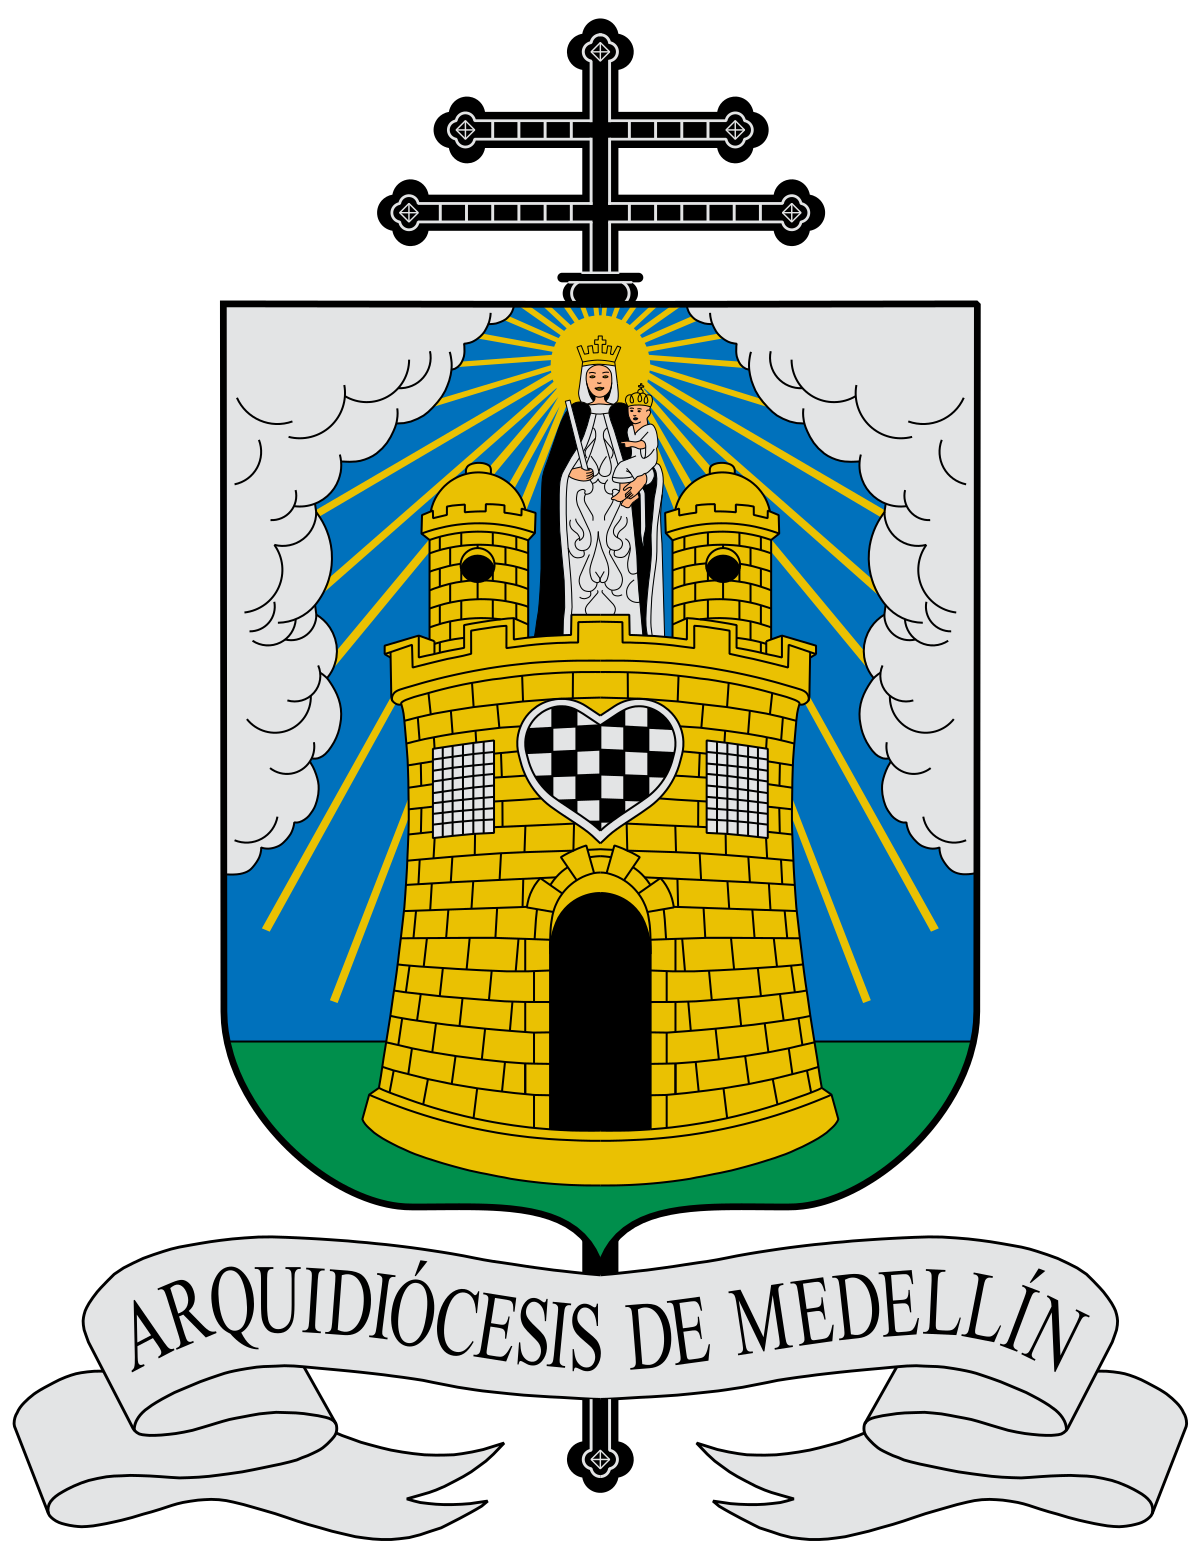 Roman Catholic Archdiocese of Medellín.